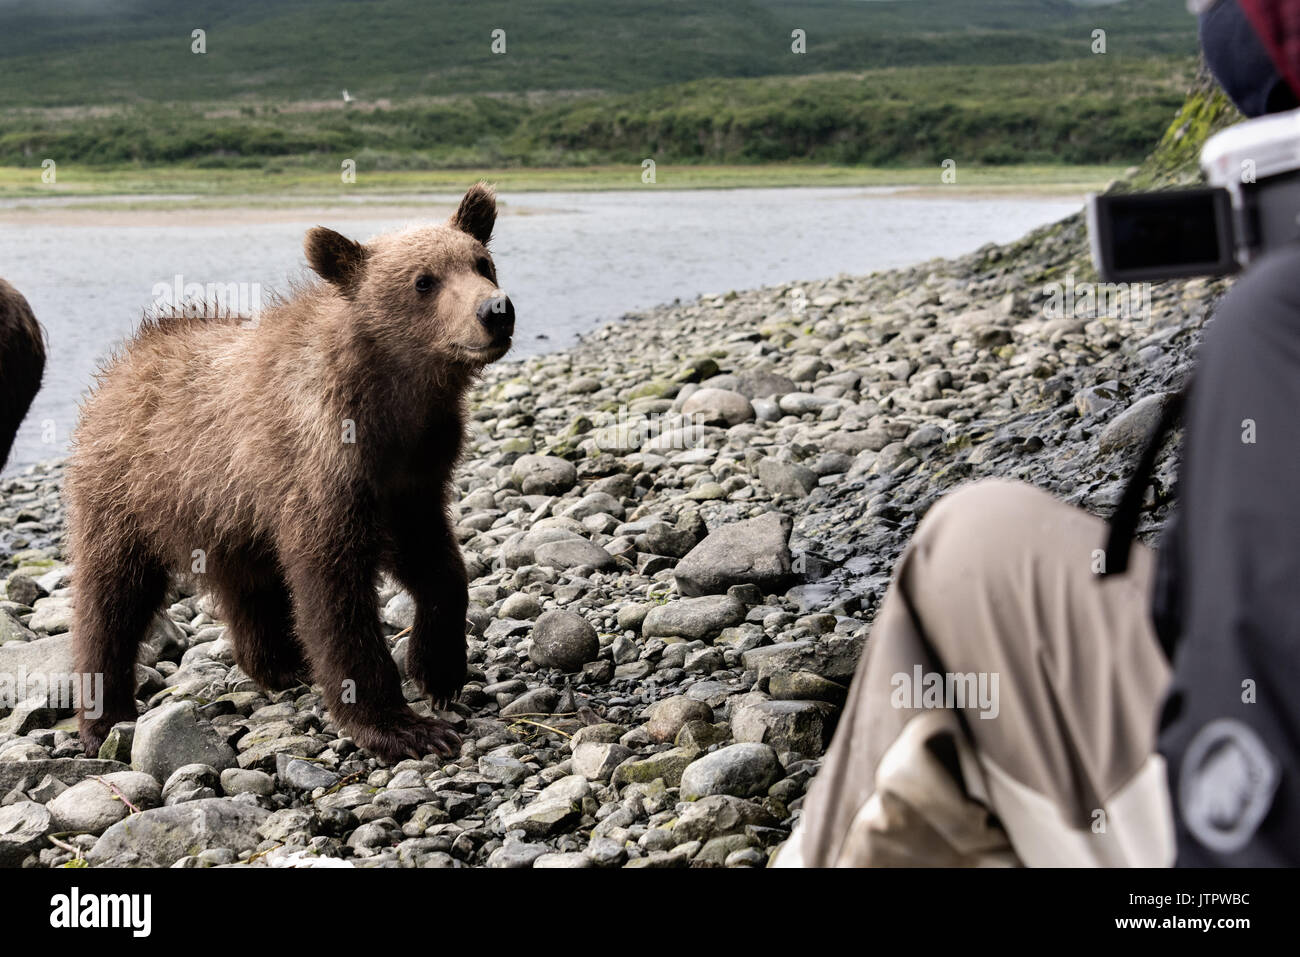 A curious brown bear cub checks out human visitors during a close encounter bear viewing at the McNeil River State Game Sanctuary on the Kenai Peninsula, Alaska. The remote site is accessed only with a special permit and is the world's largest seasonal population of brown bears in their natural environment. - Stock Image